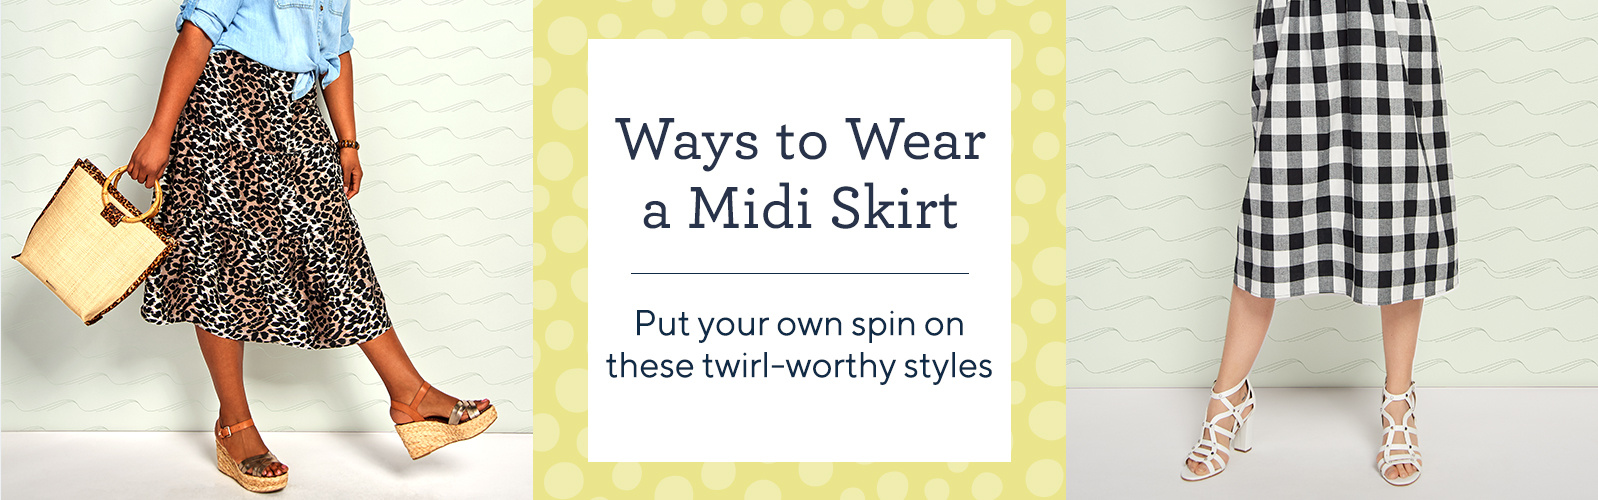 Ways to Wear a Midi Skirt  Put your own spin on these twirl-worthy styles